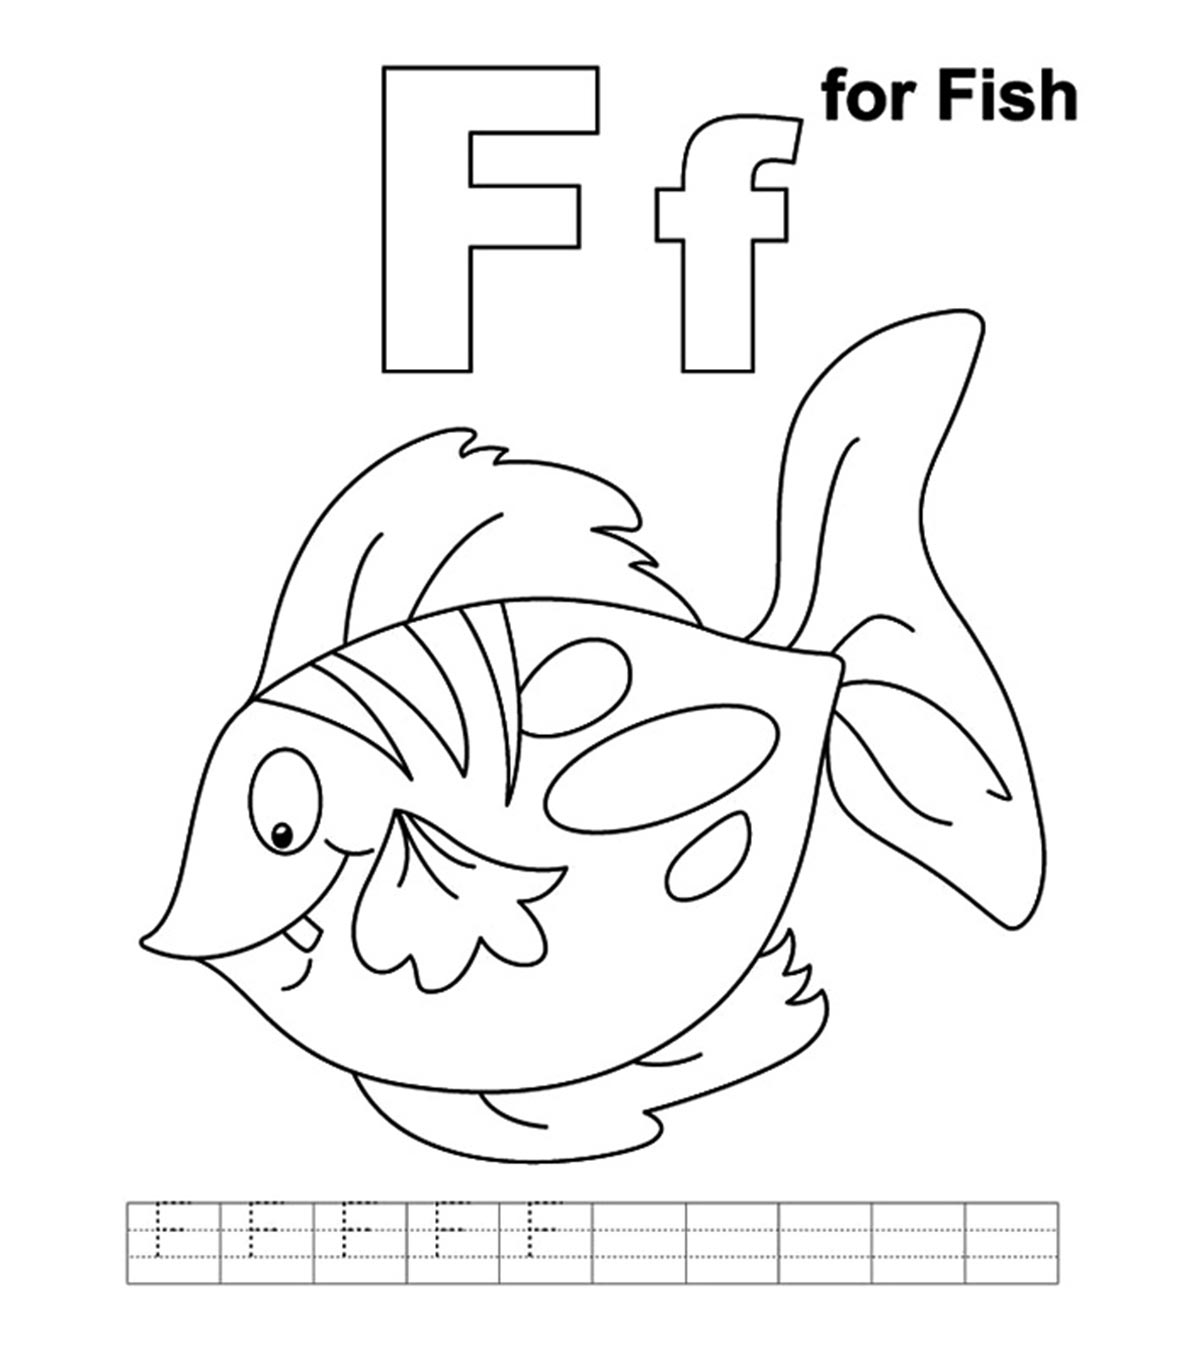 Clown Fish Coloring Page Free Printable Pages For Kids - Fish ... | 1350x1200